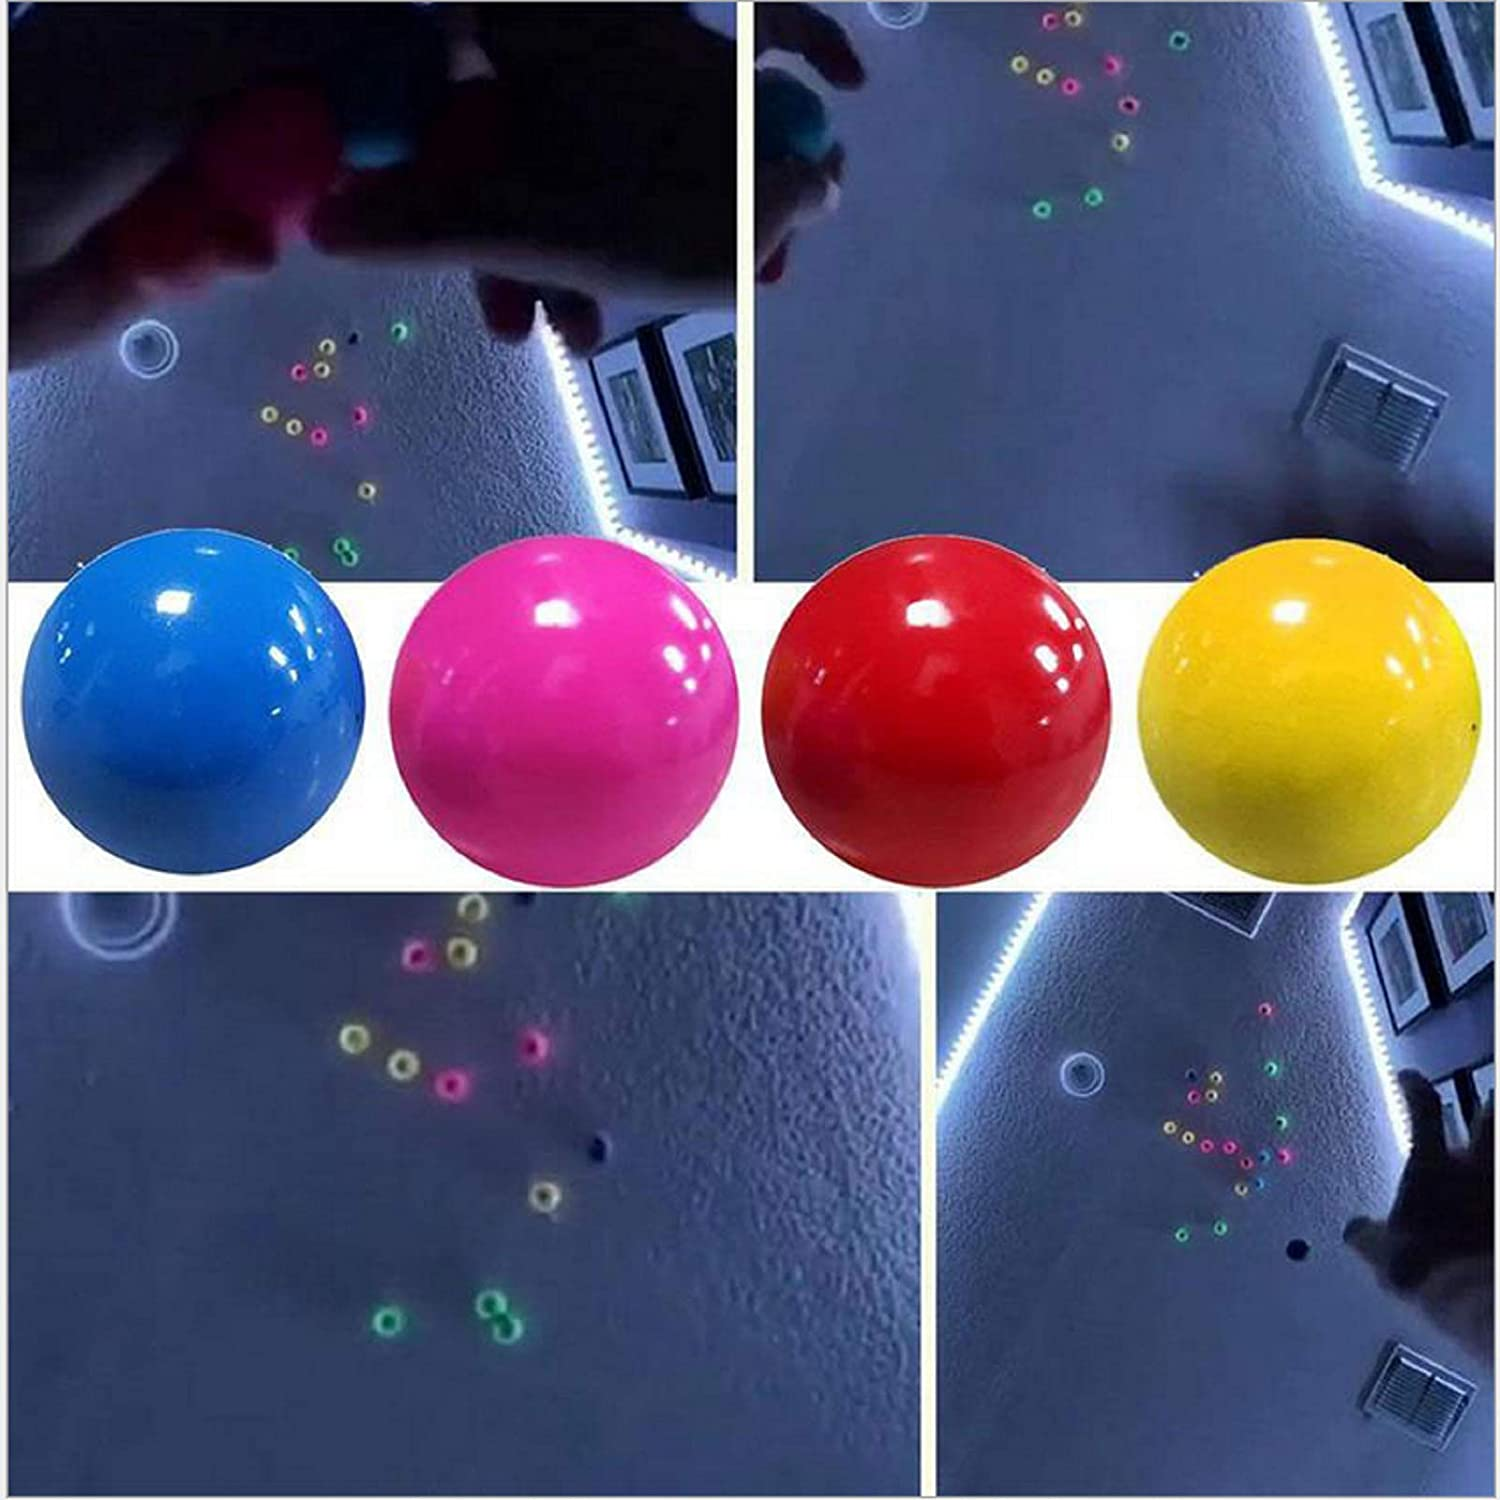 4 Pcs Luminescent Stress Relief Balls Sticky Ball,Glow in The Dark Sticky Ceiling Balls,Stick to The Wall and Slowly Fall Off Squishy Glow Stress Relief Toys for Kids and Adults Tear-